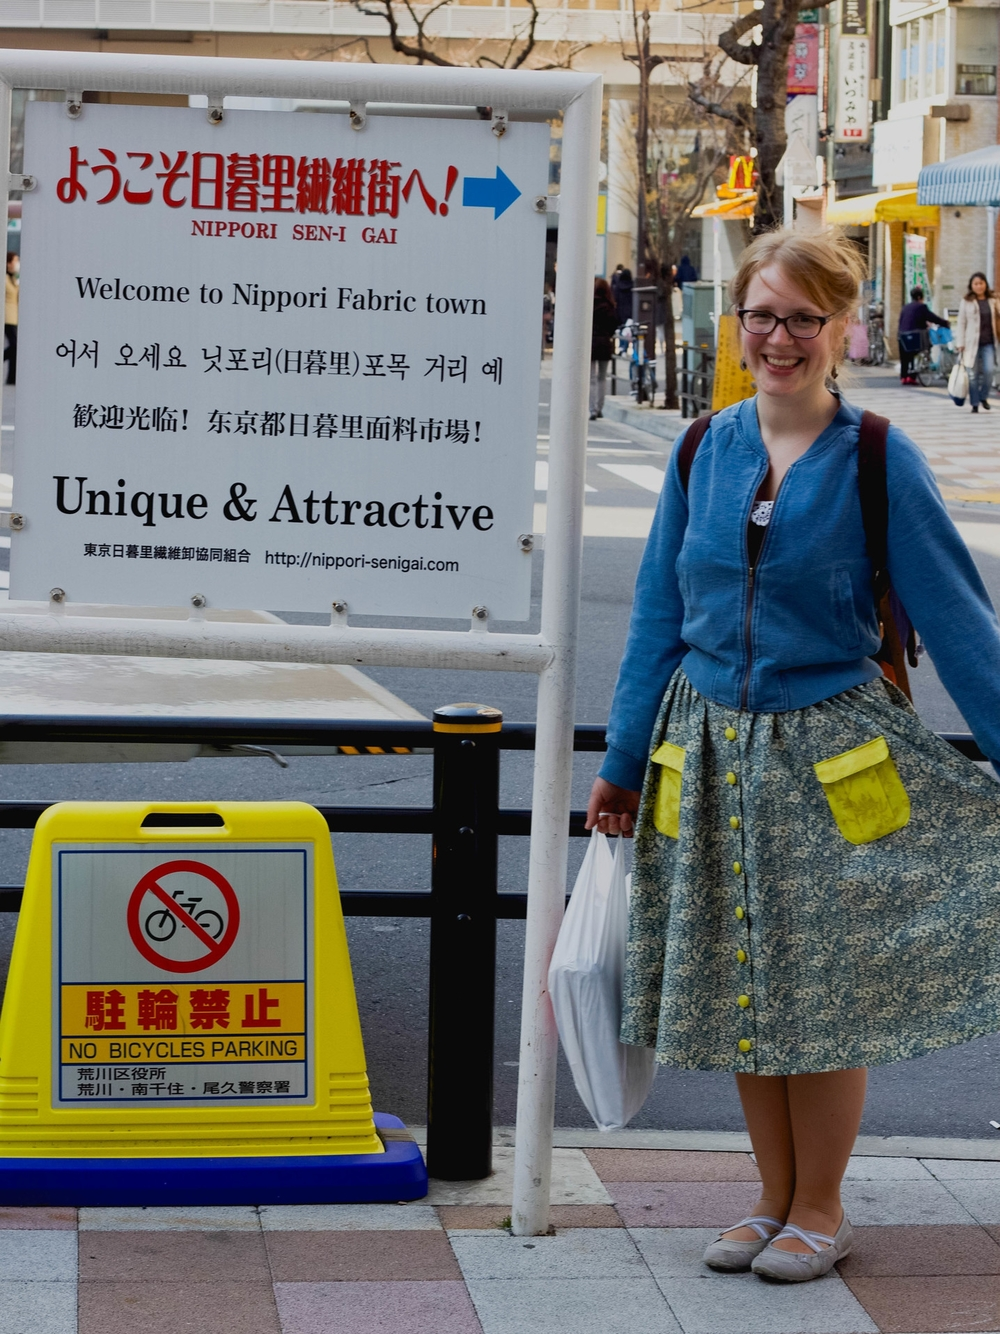 Siobhan sporting her skirt in Japan